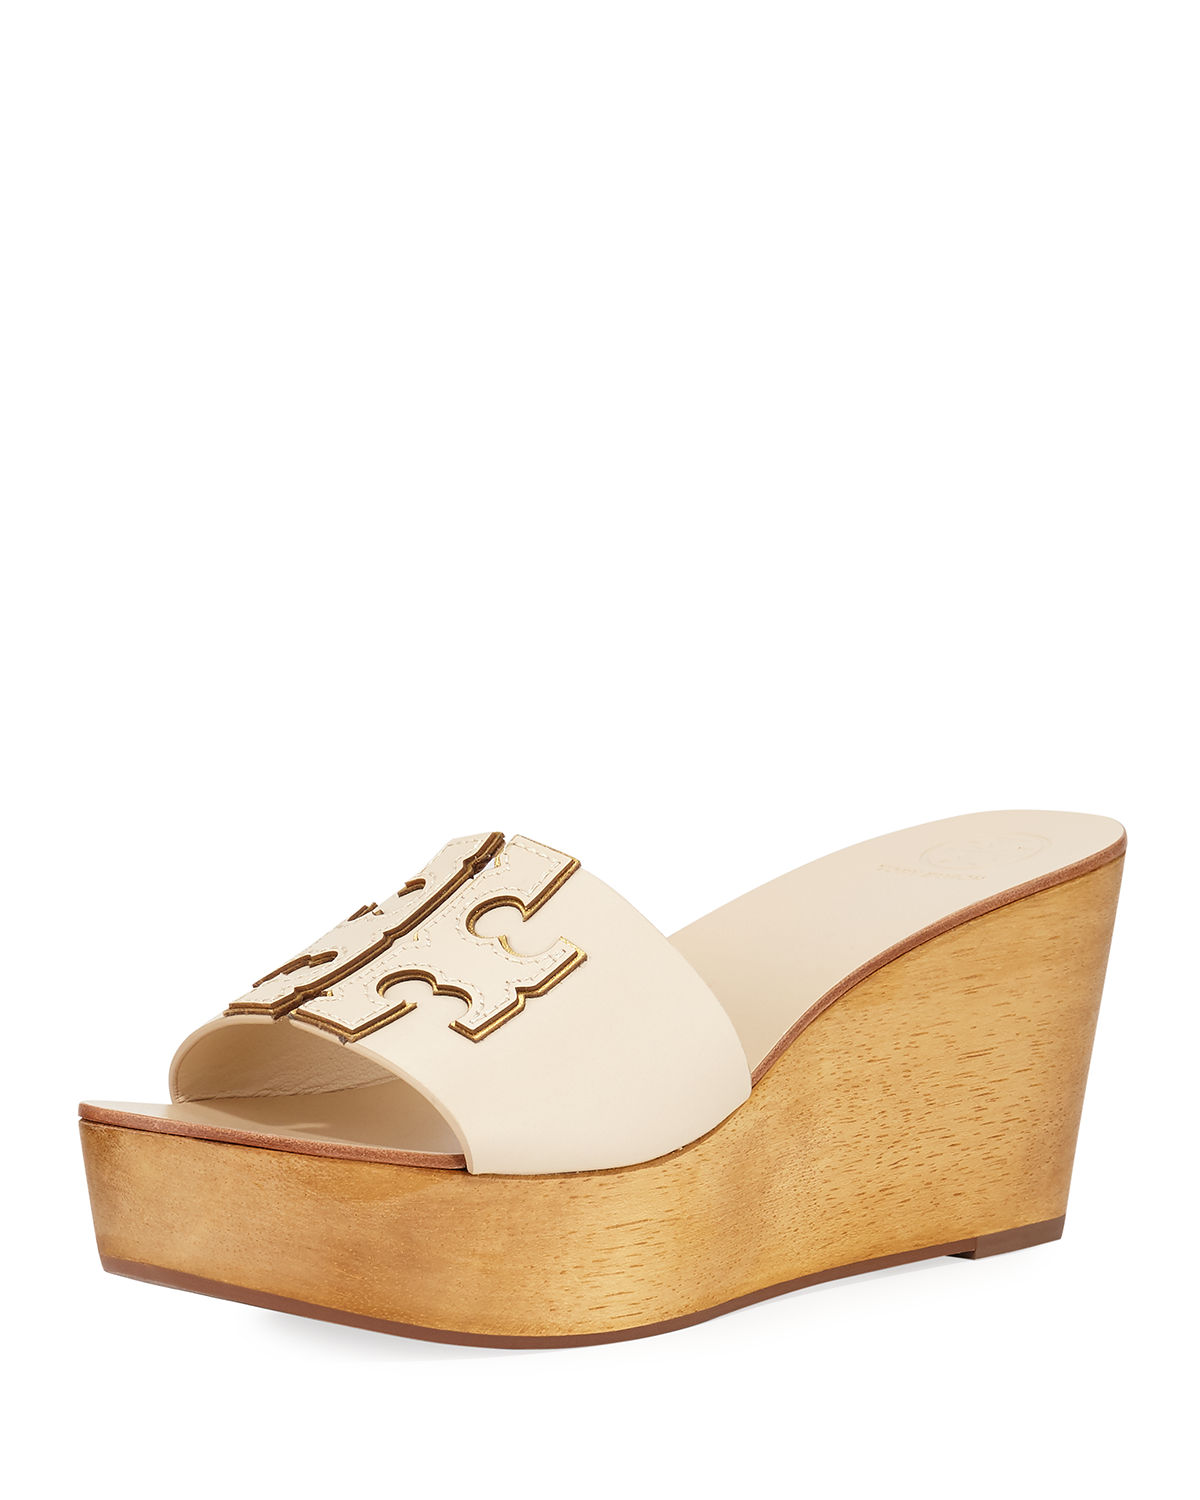 43a71352ed8c Tory Burch Ines 80Mm Wedge Slide Sandals In New Cream   Gold